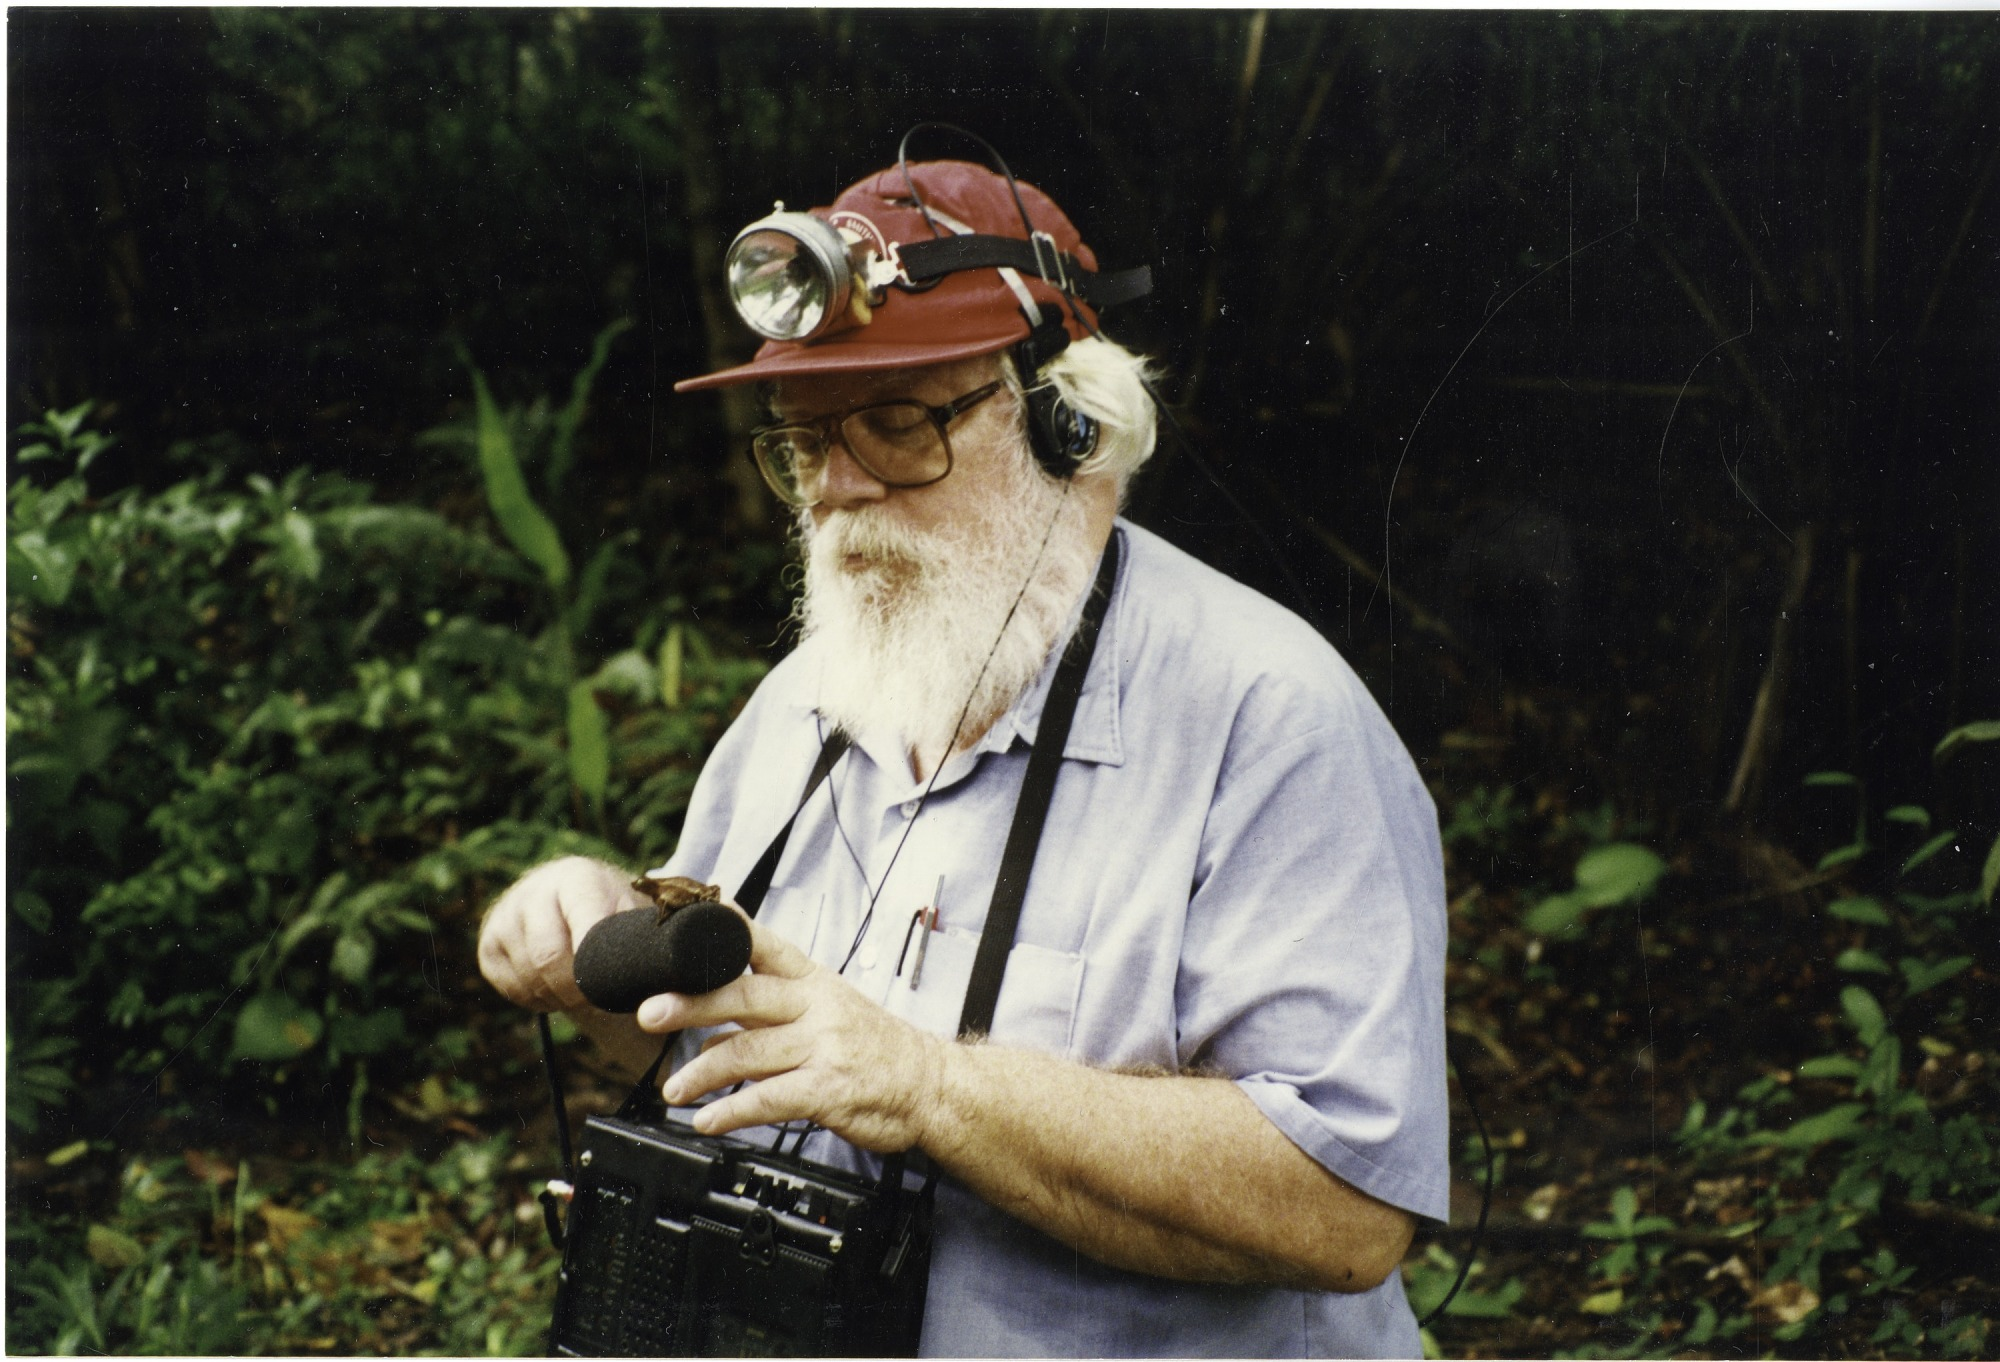 Stan Rand in the Field, June 1996, Smithsonian Archives - History Div, SIA2011-0032.